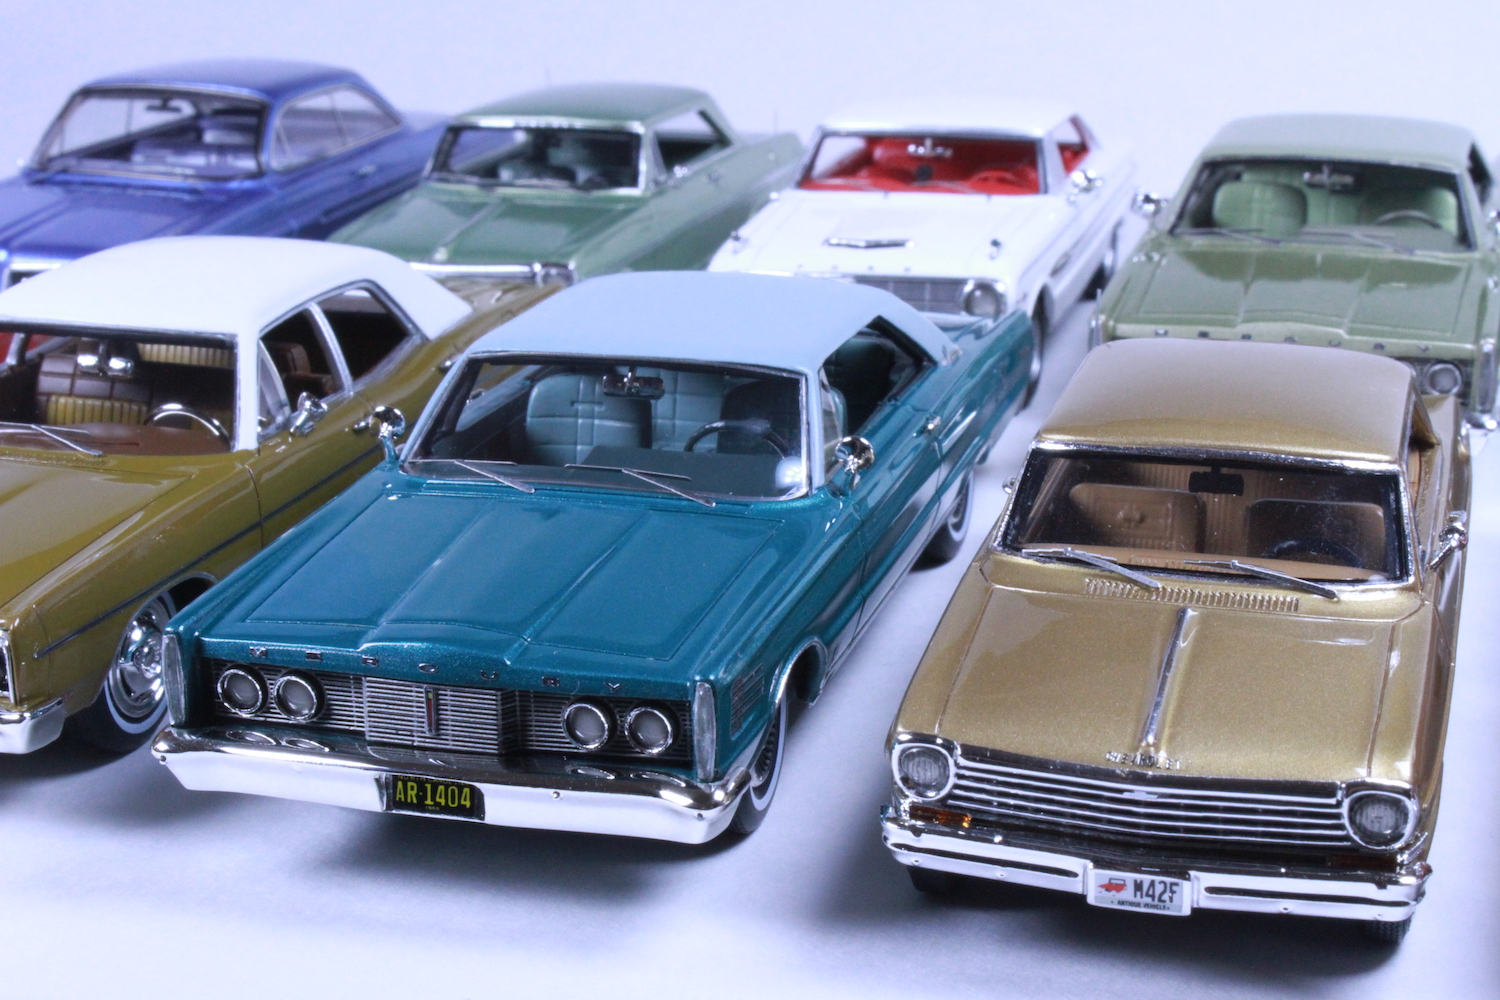 Goldvarg Collection preserves the everyday cars of the '50s and '60s in miniature scale